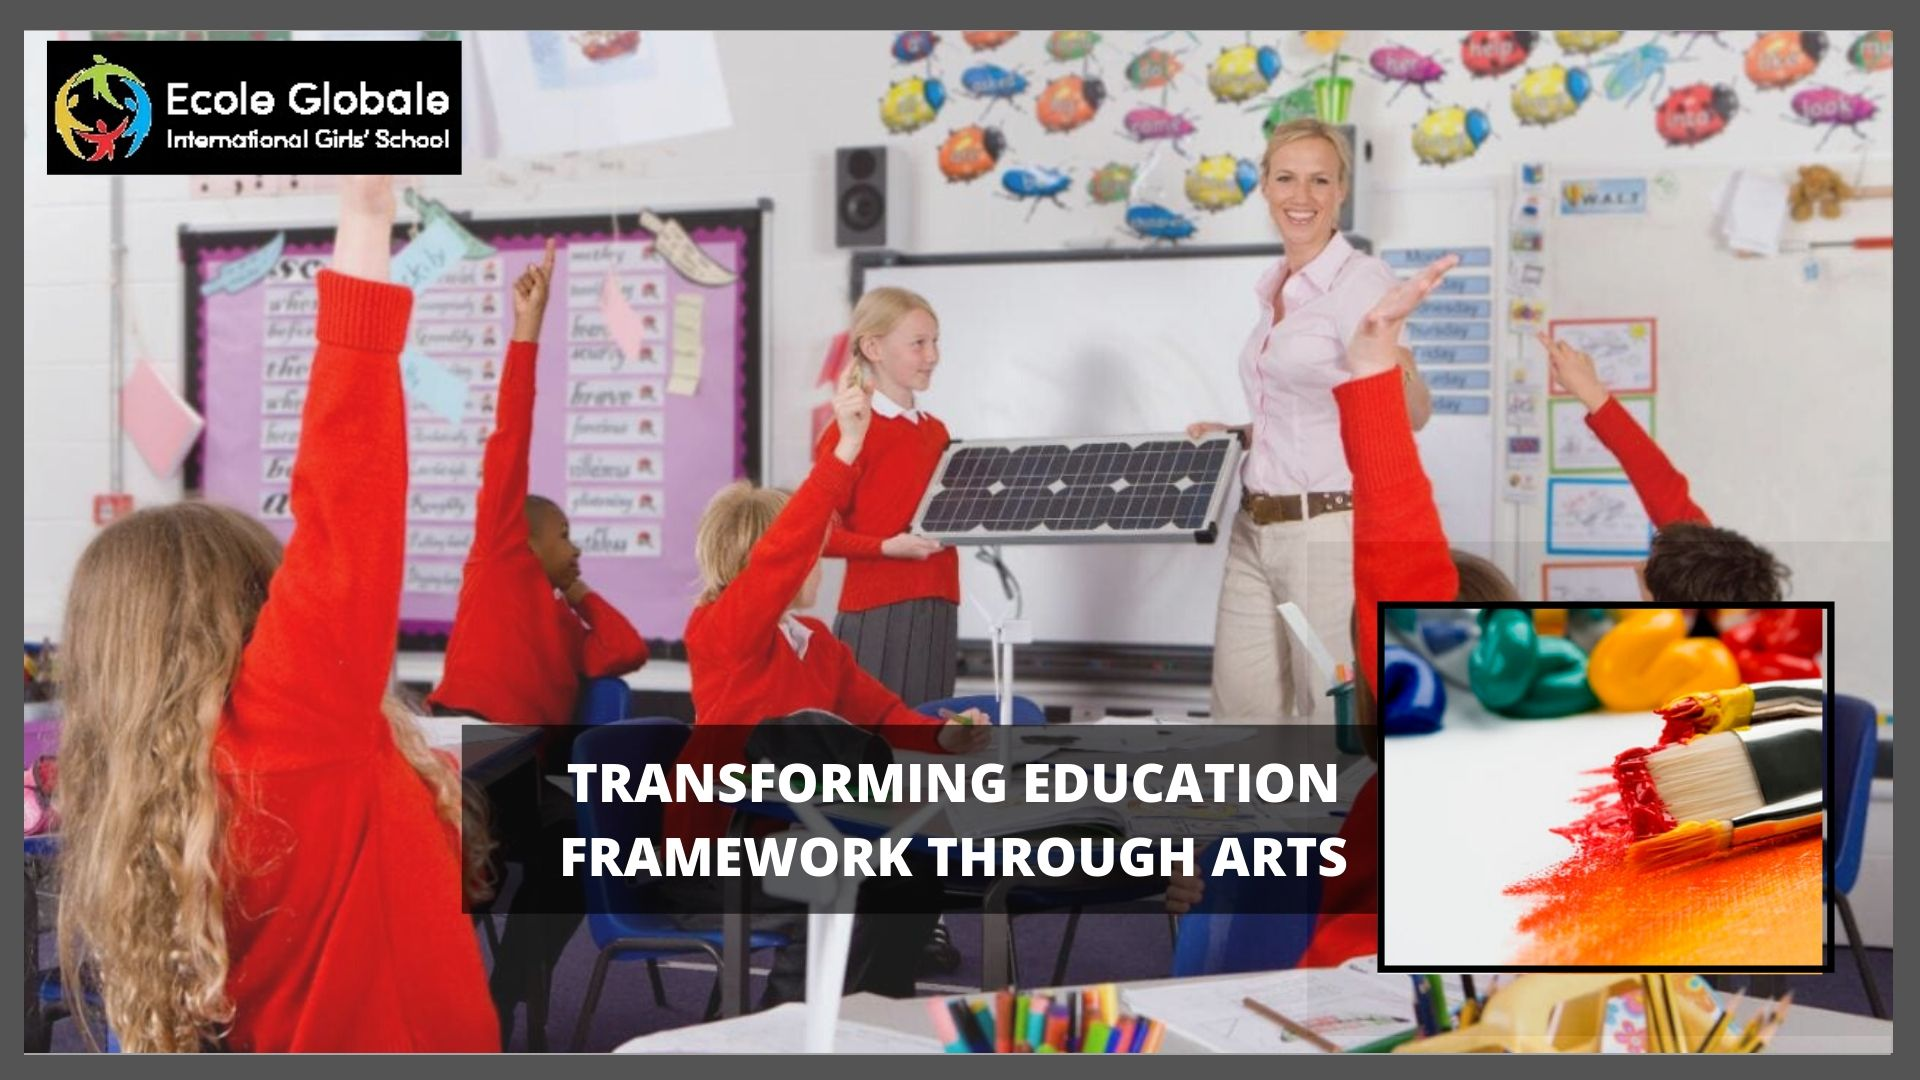 Transforming education framework through arts